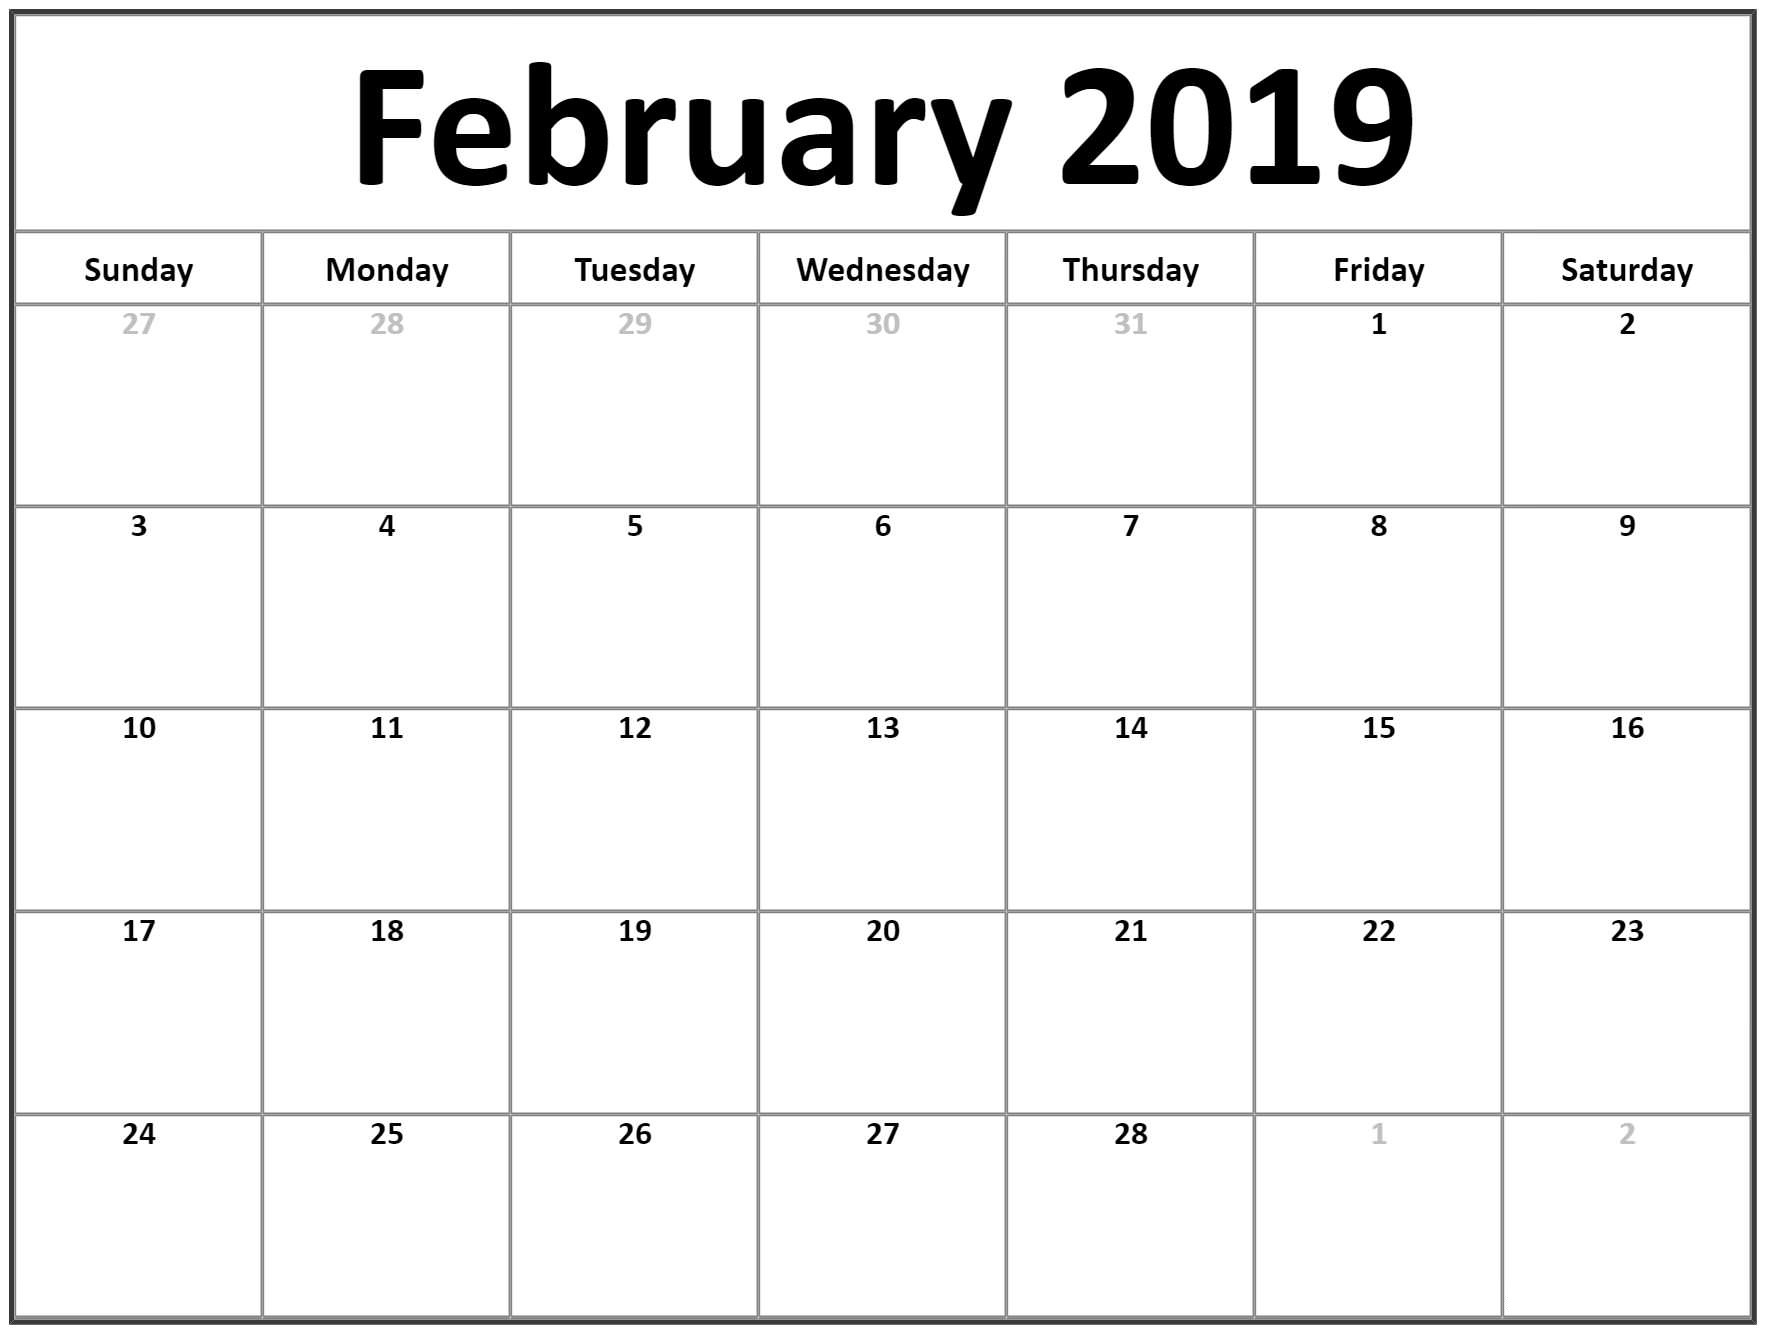 Blank February 2019 Calendar Printable - Free Printable Calendar throughout Blank Calendar To Fill In Free